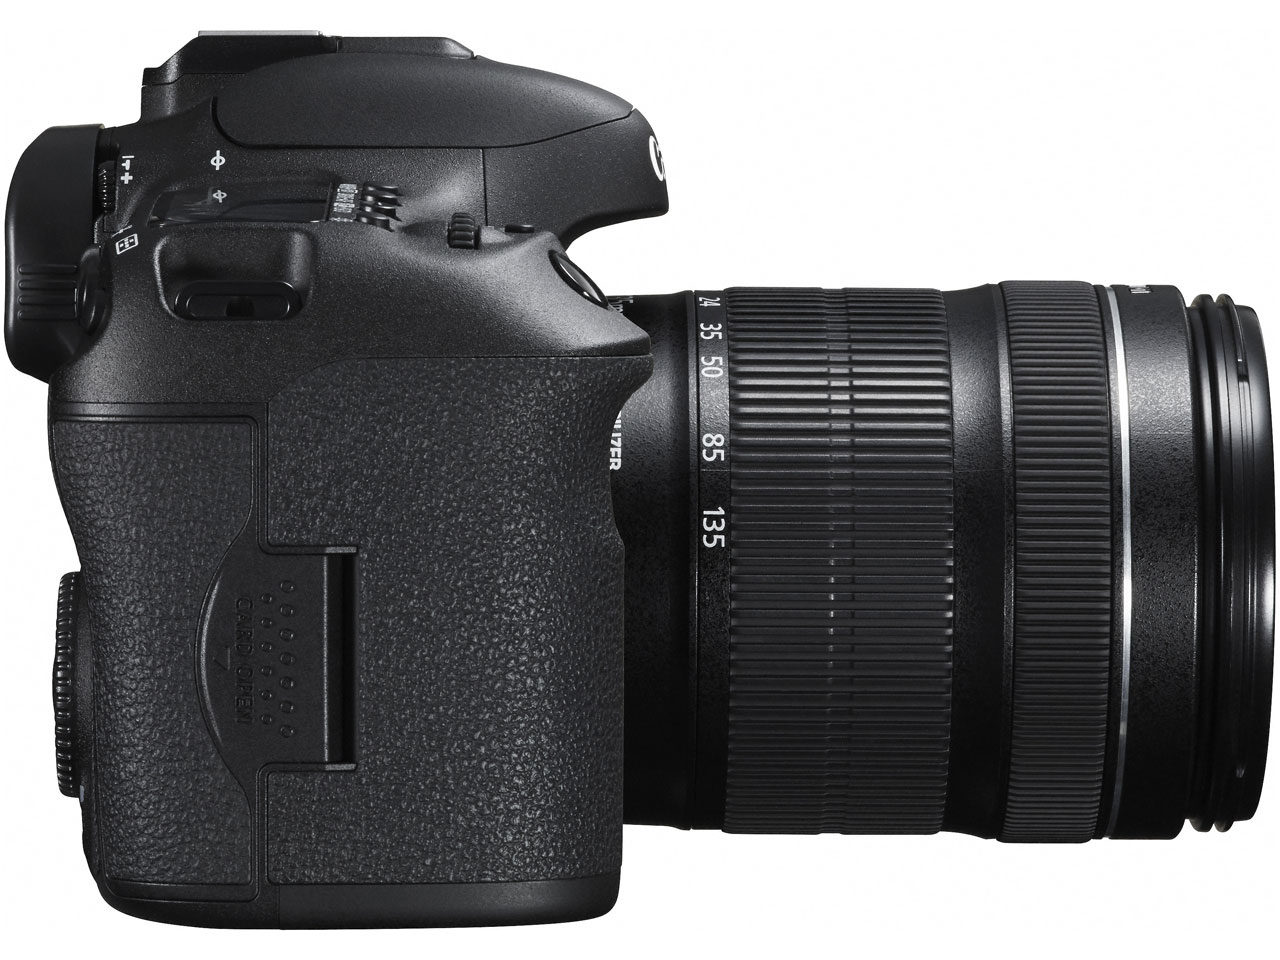 �w�{�� �����ʁx EOS 7D Mark II EF-S18-135 IS STM �����Y�L�b�g �̐��i�摜